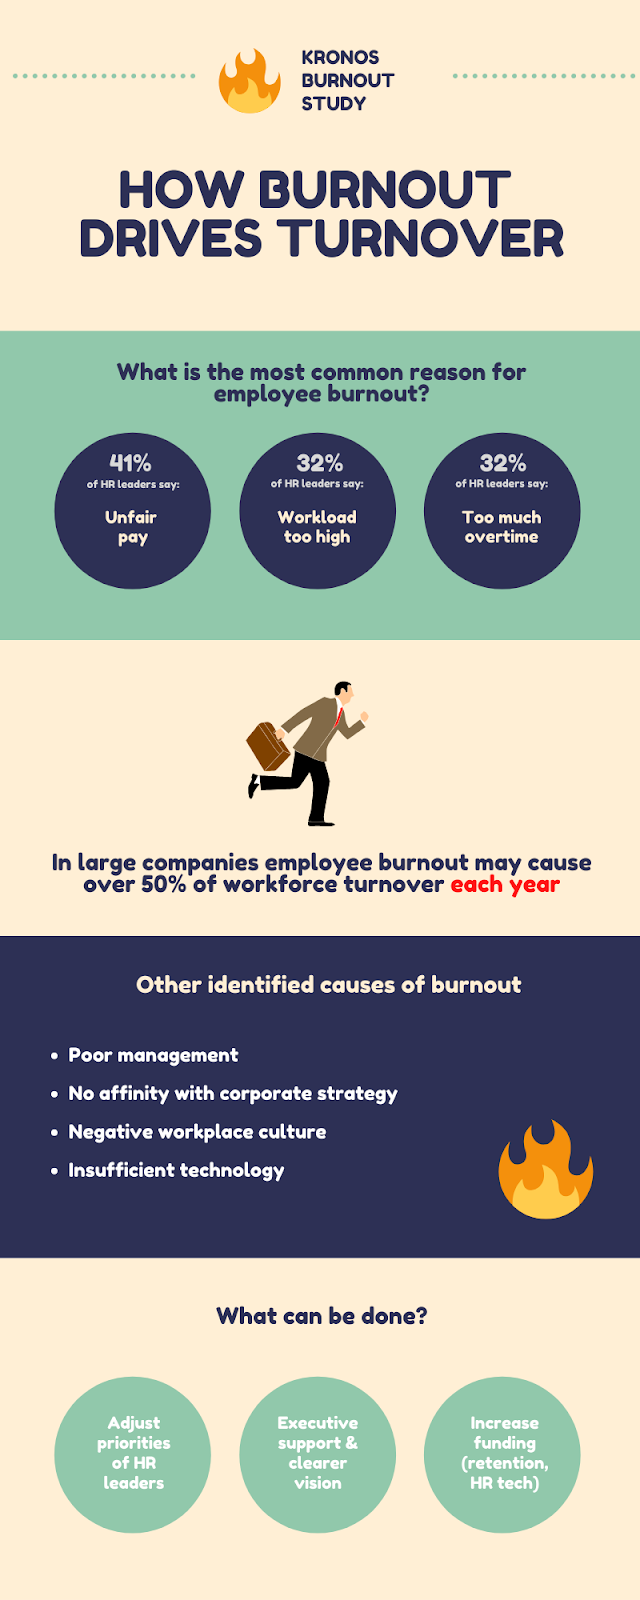 How to prevent employee burnout?